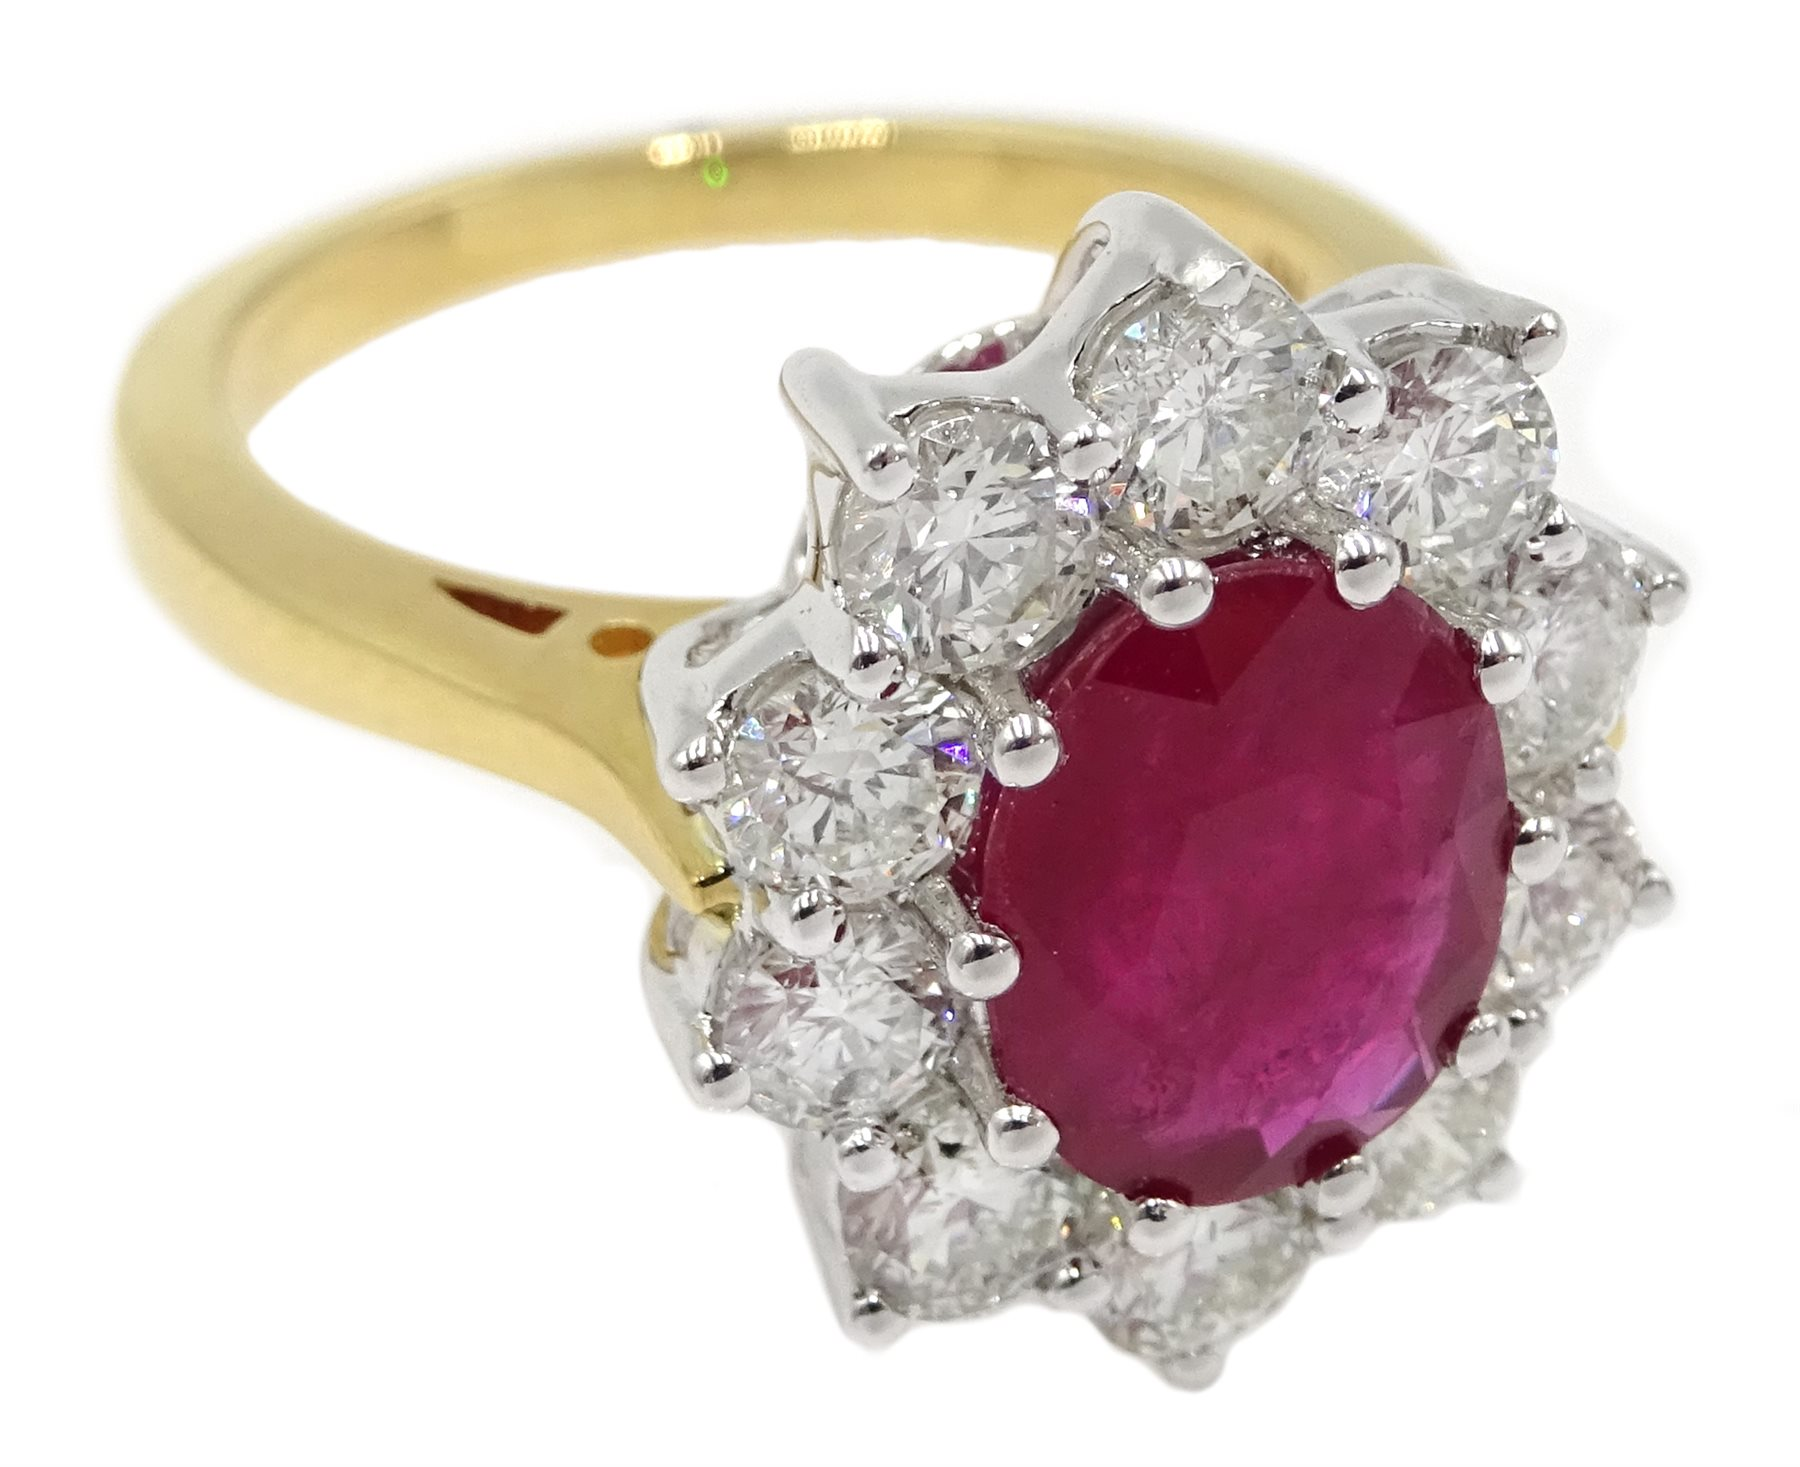 18ct gold oval ruby and round brilliant cut diamond cluster ring - Image 3 of 5